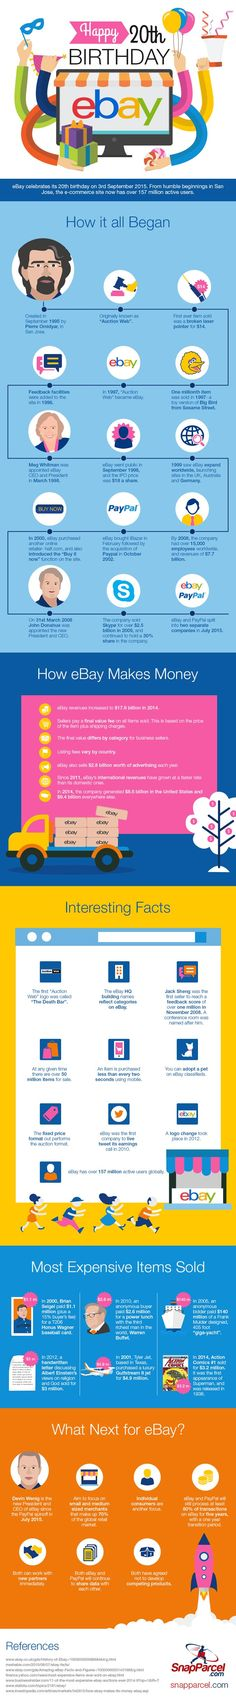 Tamebay : Blog : Infographic: 20 years of eBay